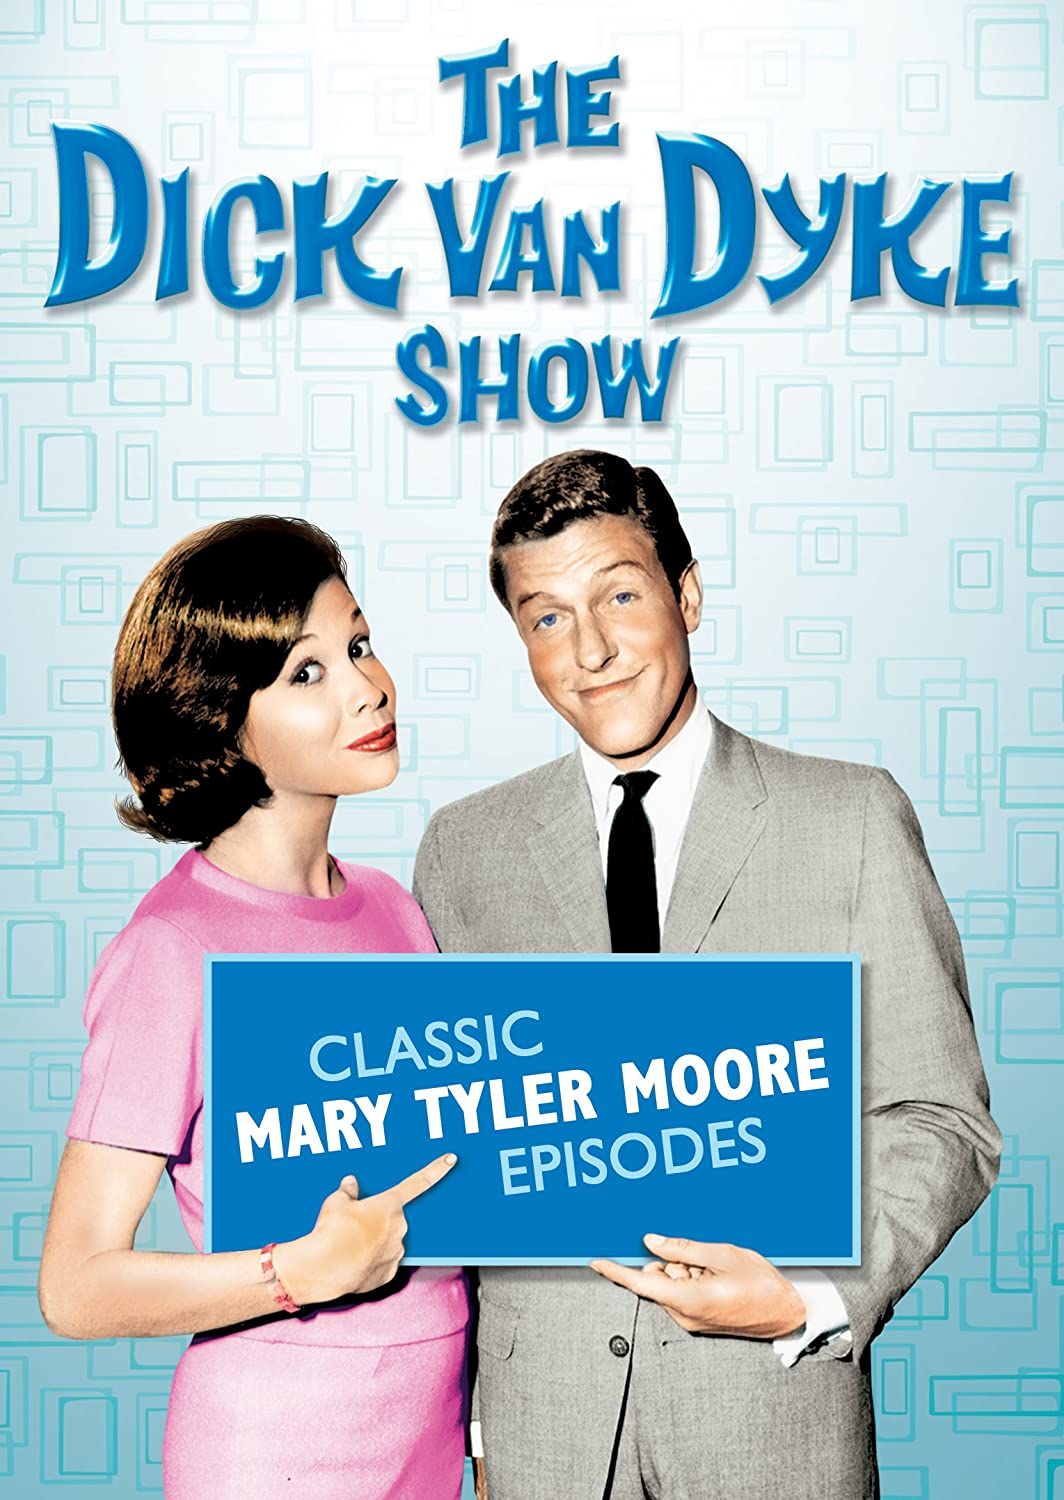 Mary Tyler Moore Episodes: